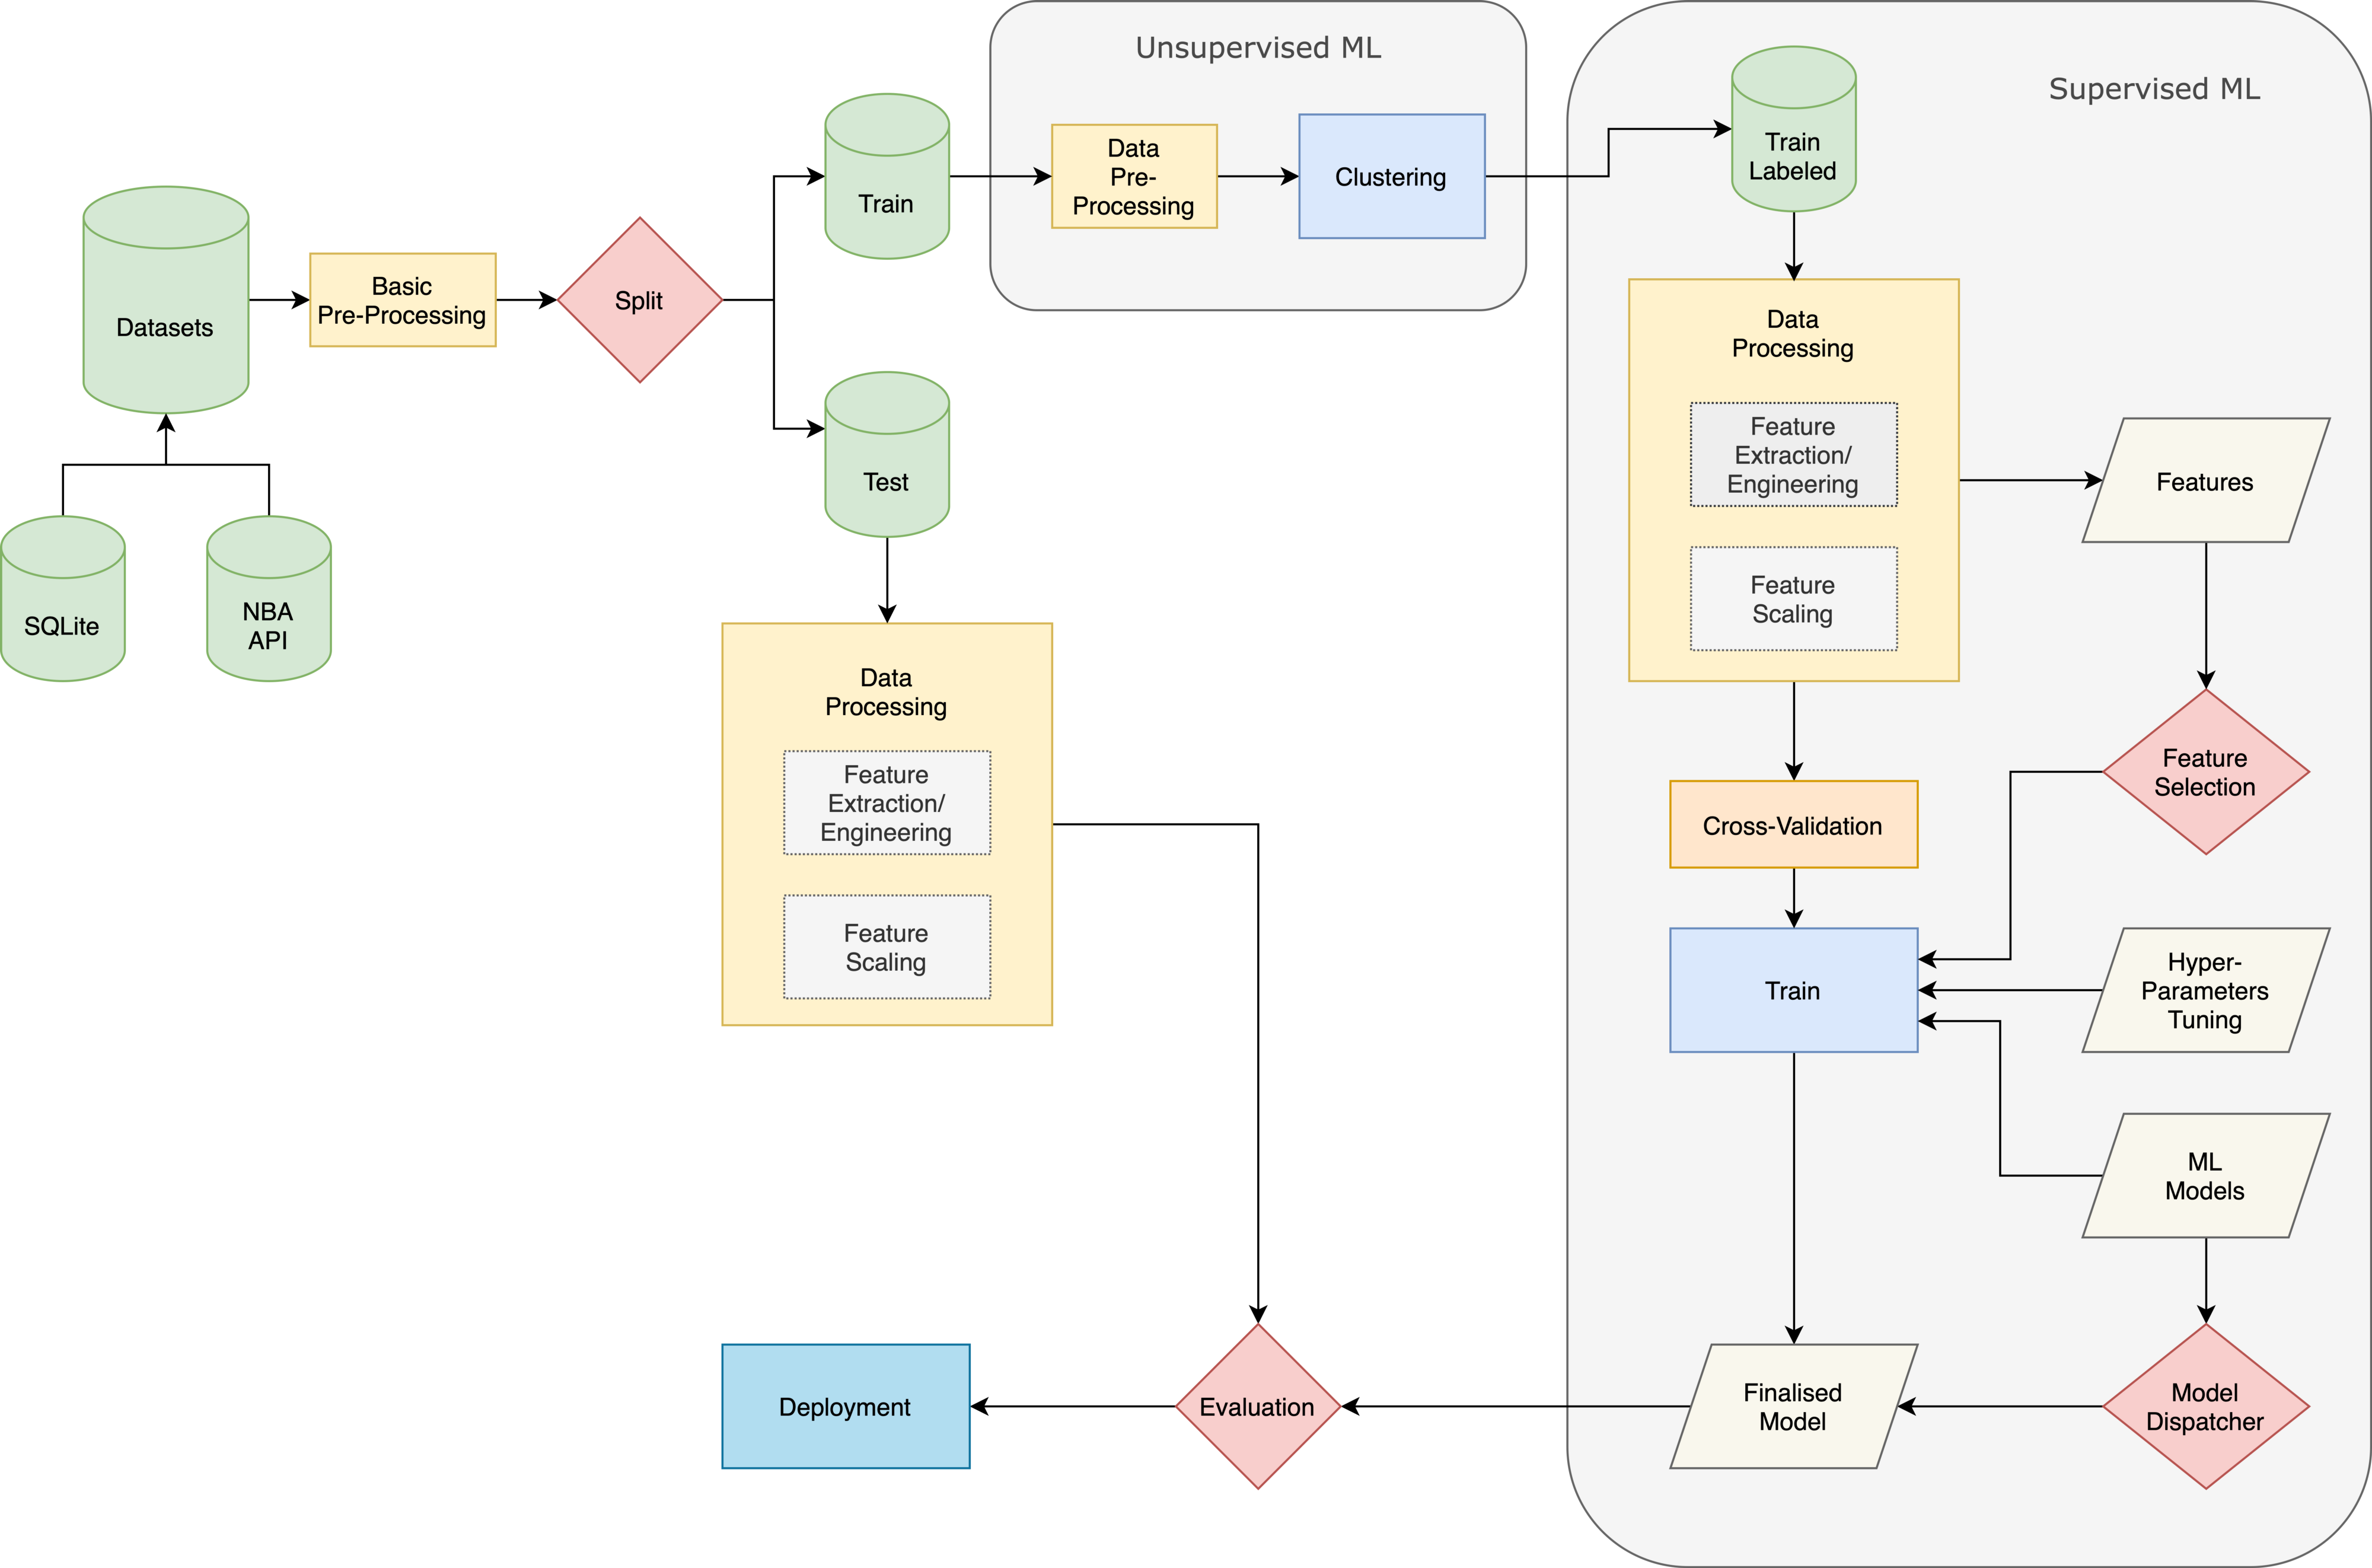 Workflow Chart (Image by author)